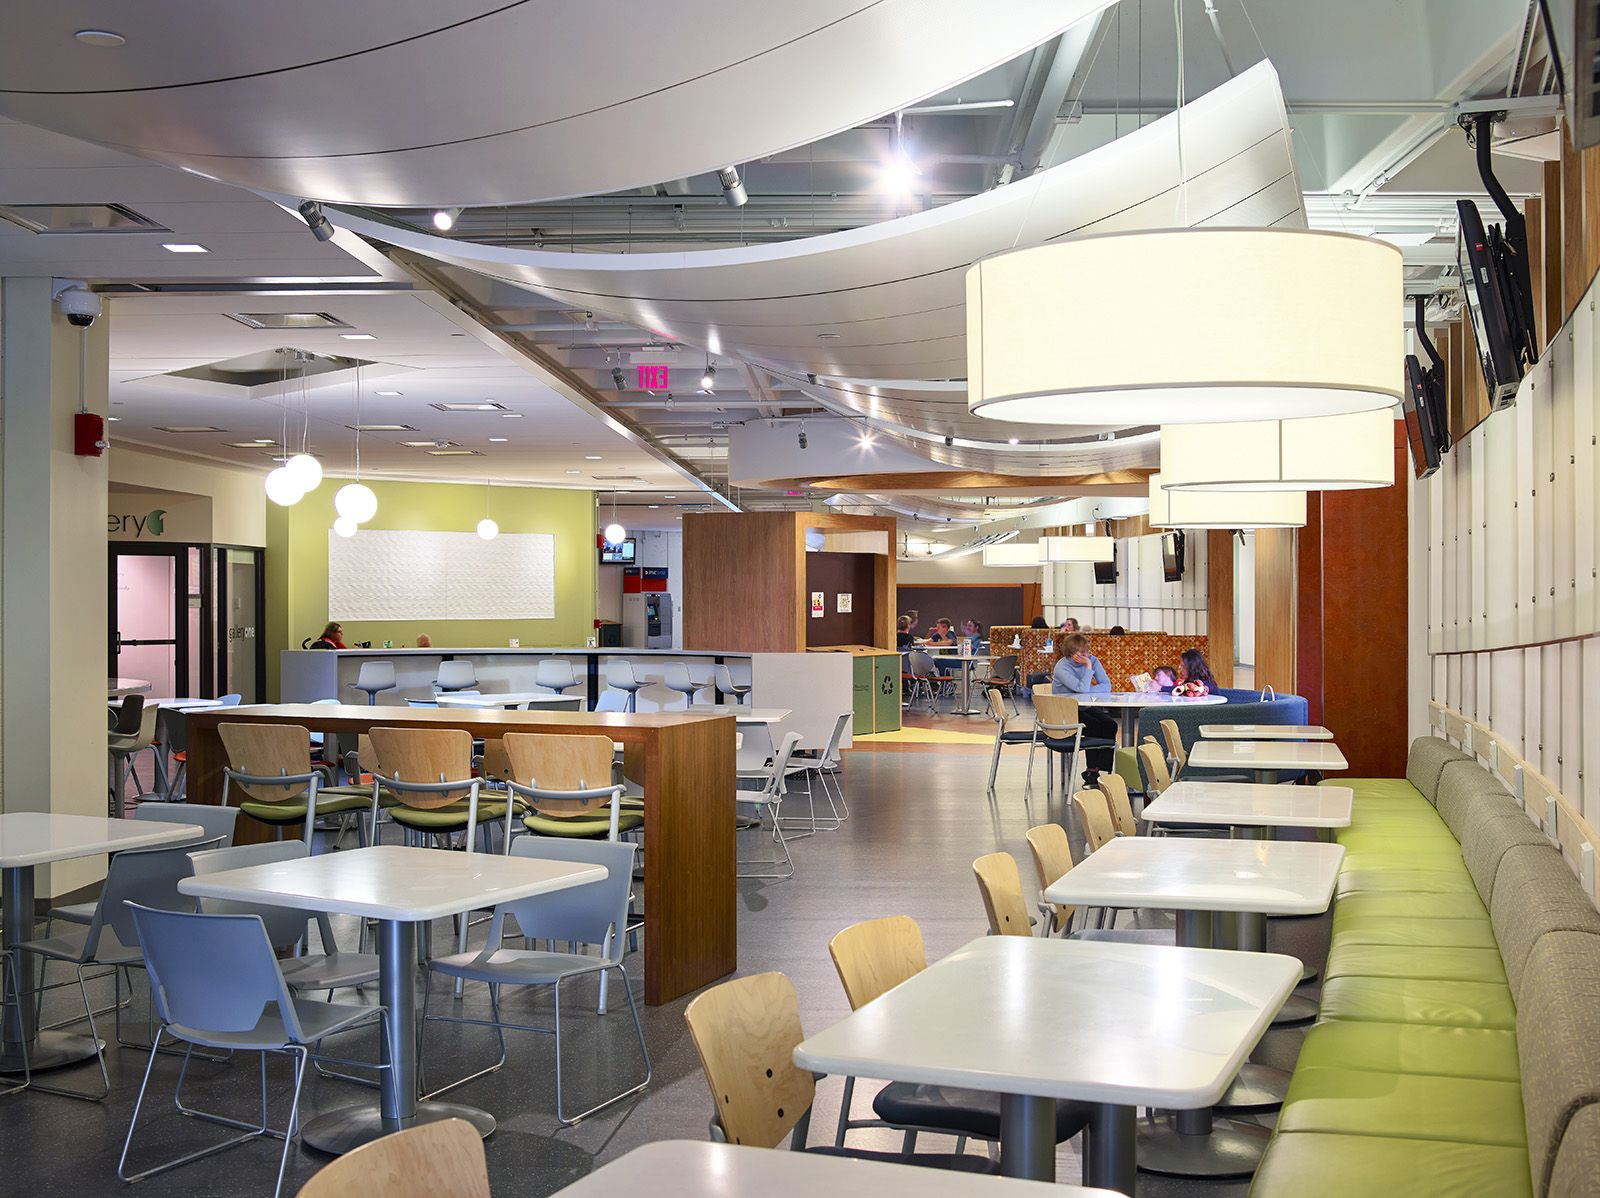 Pin By Hobbs Black Architects On Work Cafes Break Rooms Coffee Bars Student Center College Students Community College